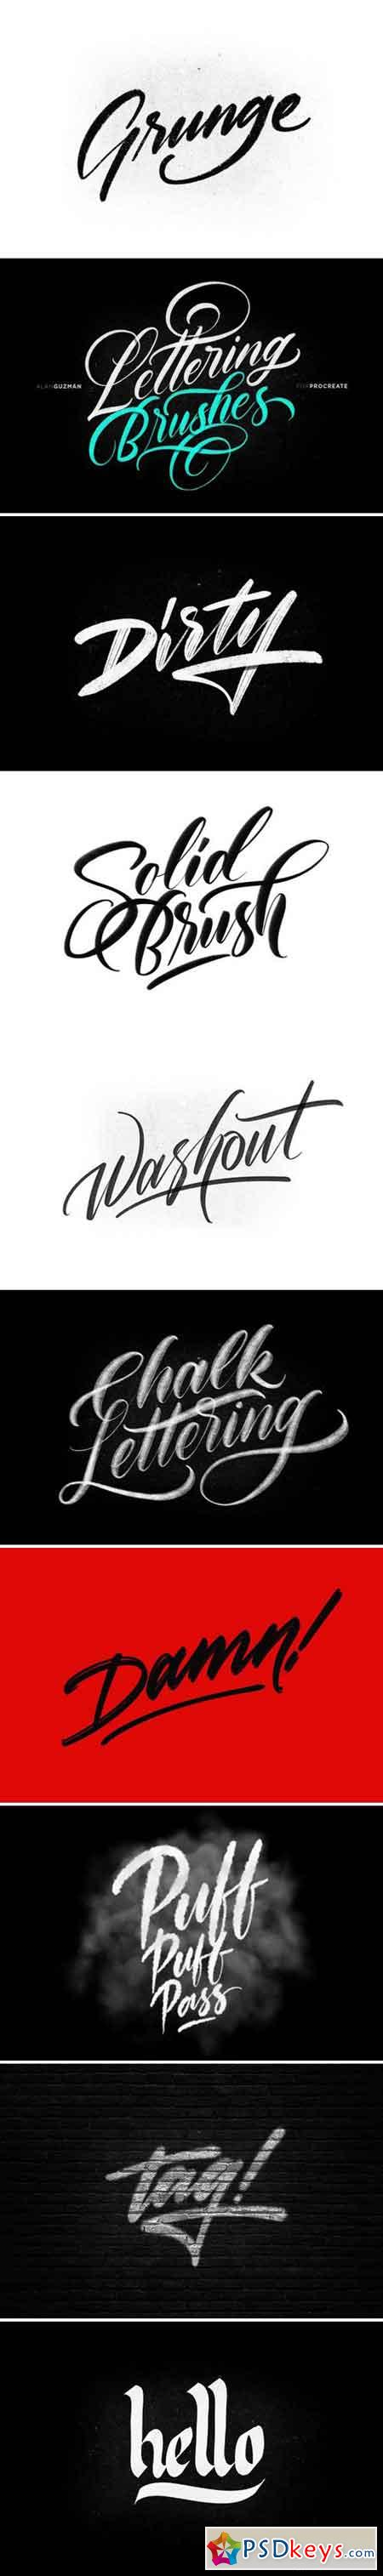 Procreate Lettering Brushes 1835407